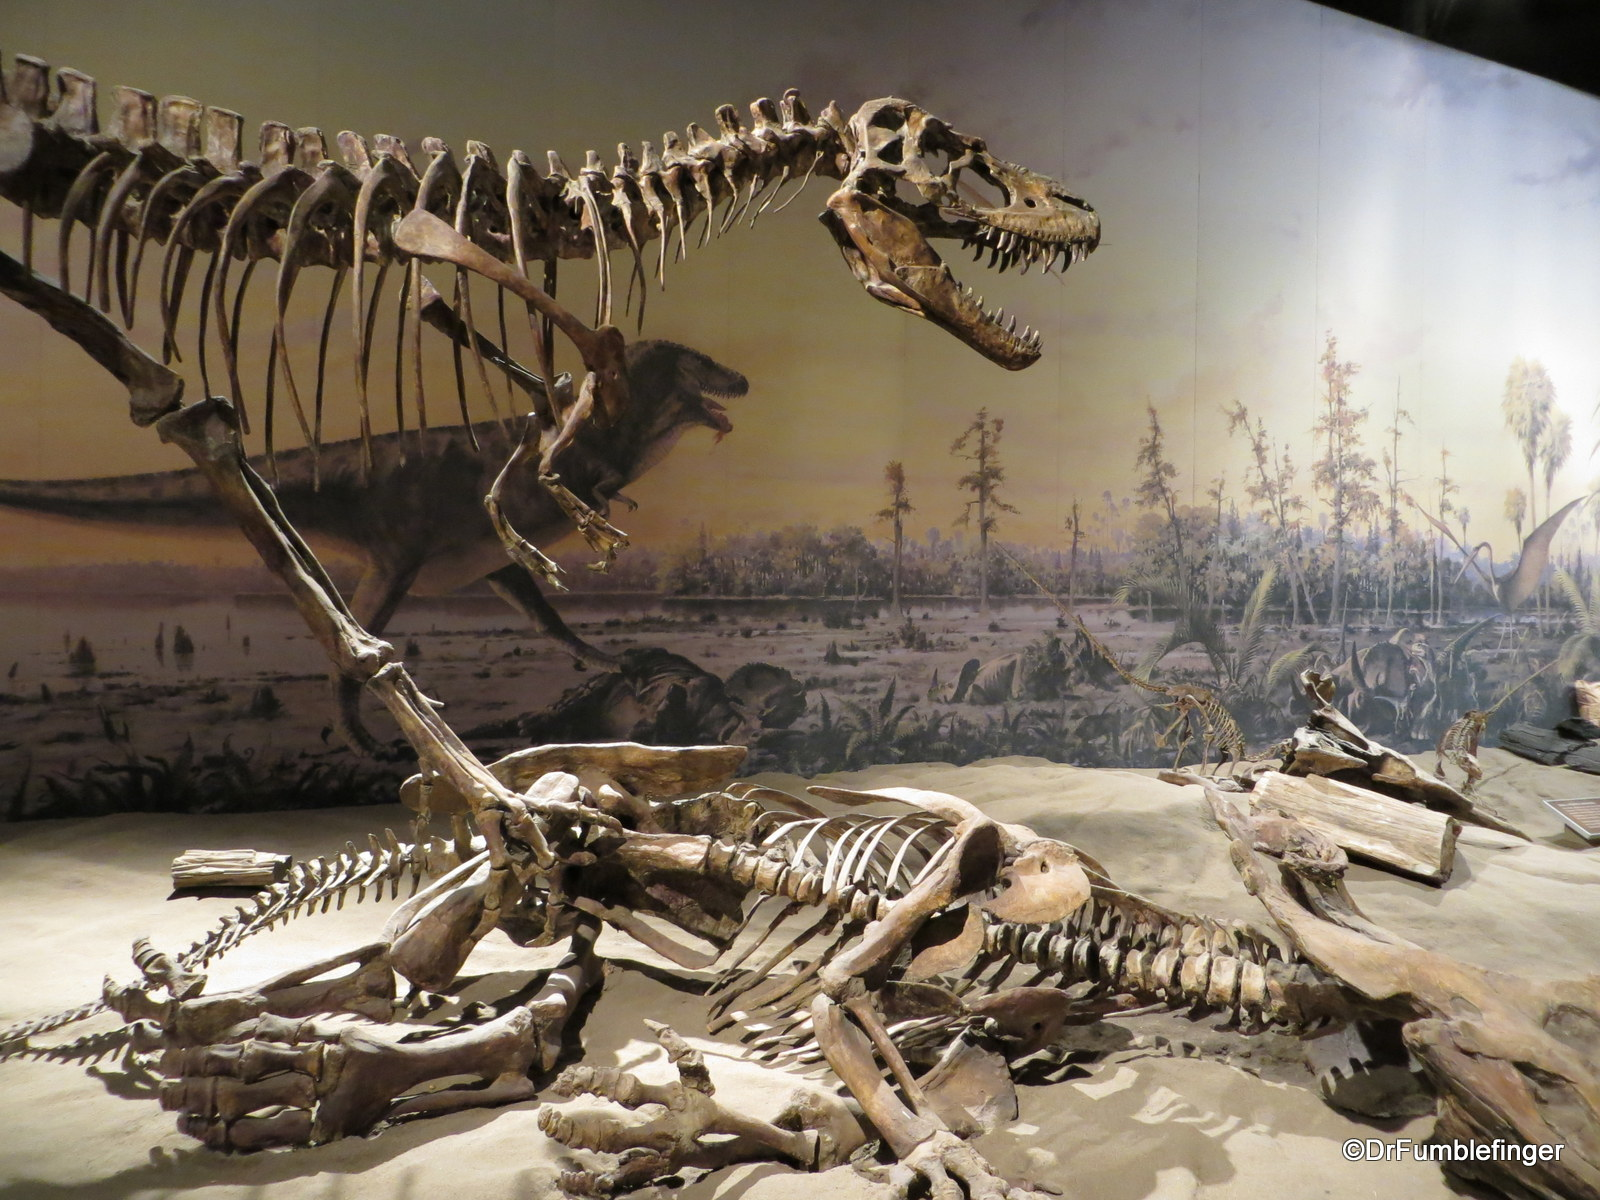 Dome-headed dinosaurs, Dinosaur Hall, Royal Tyrrell Museum